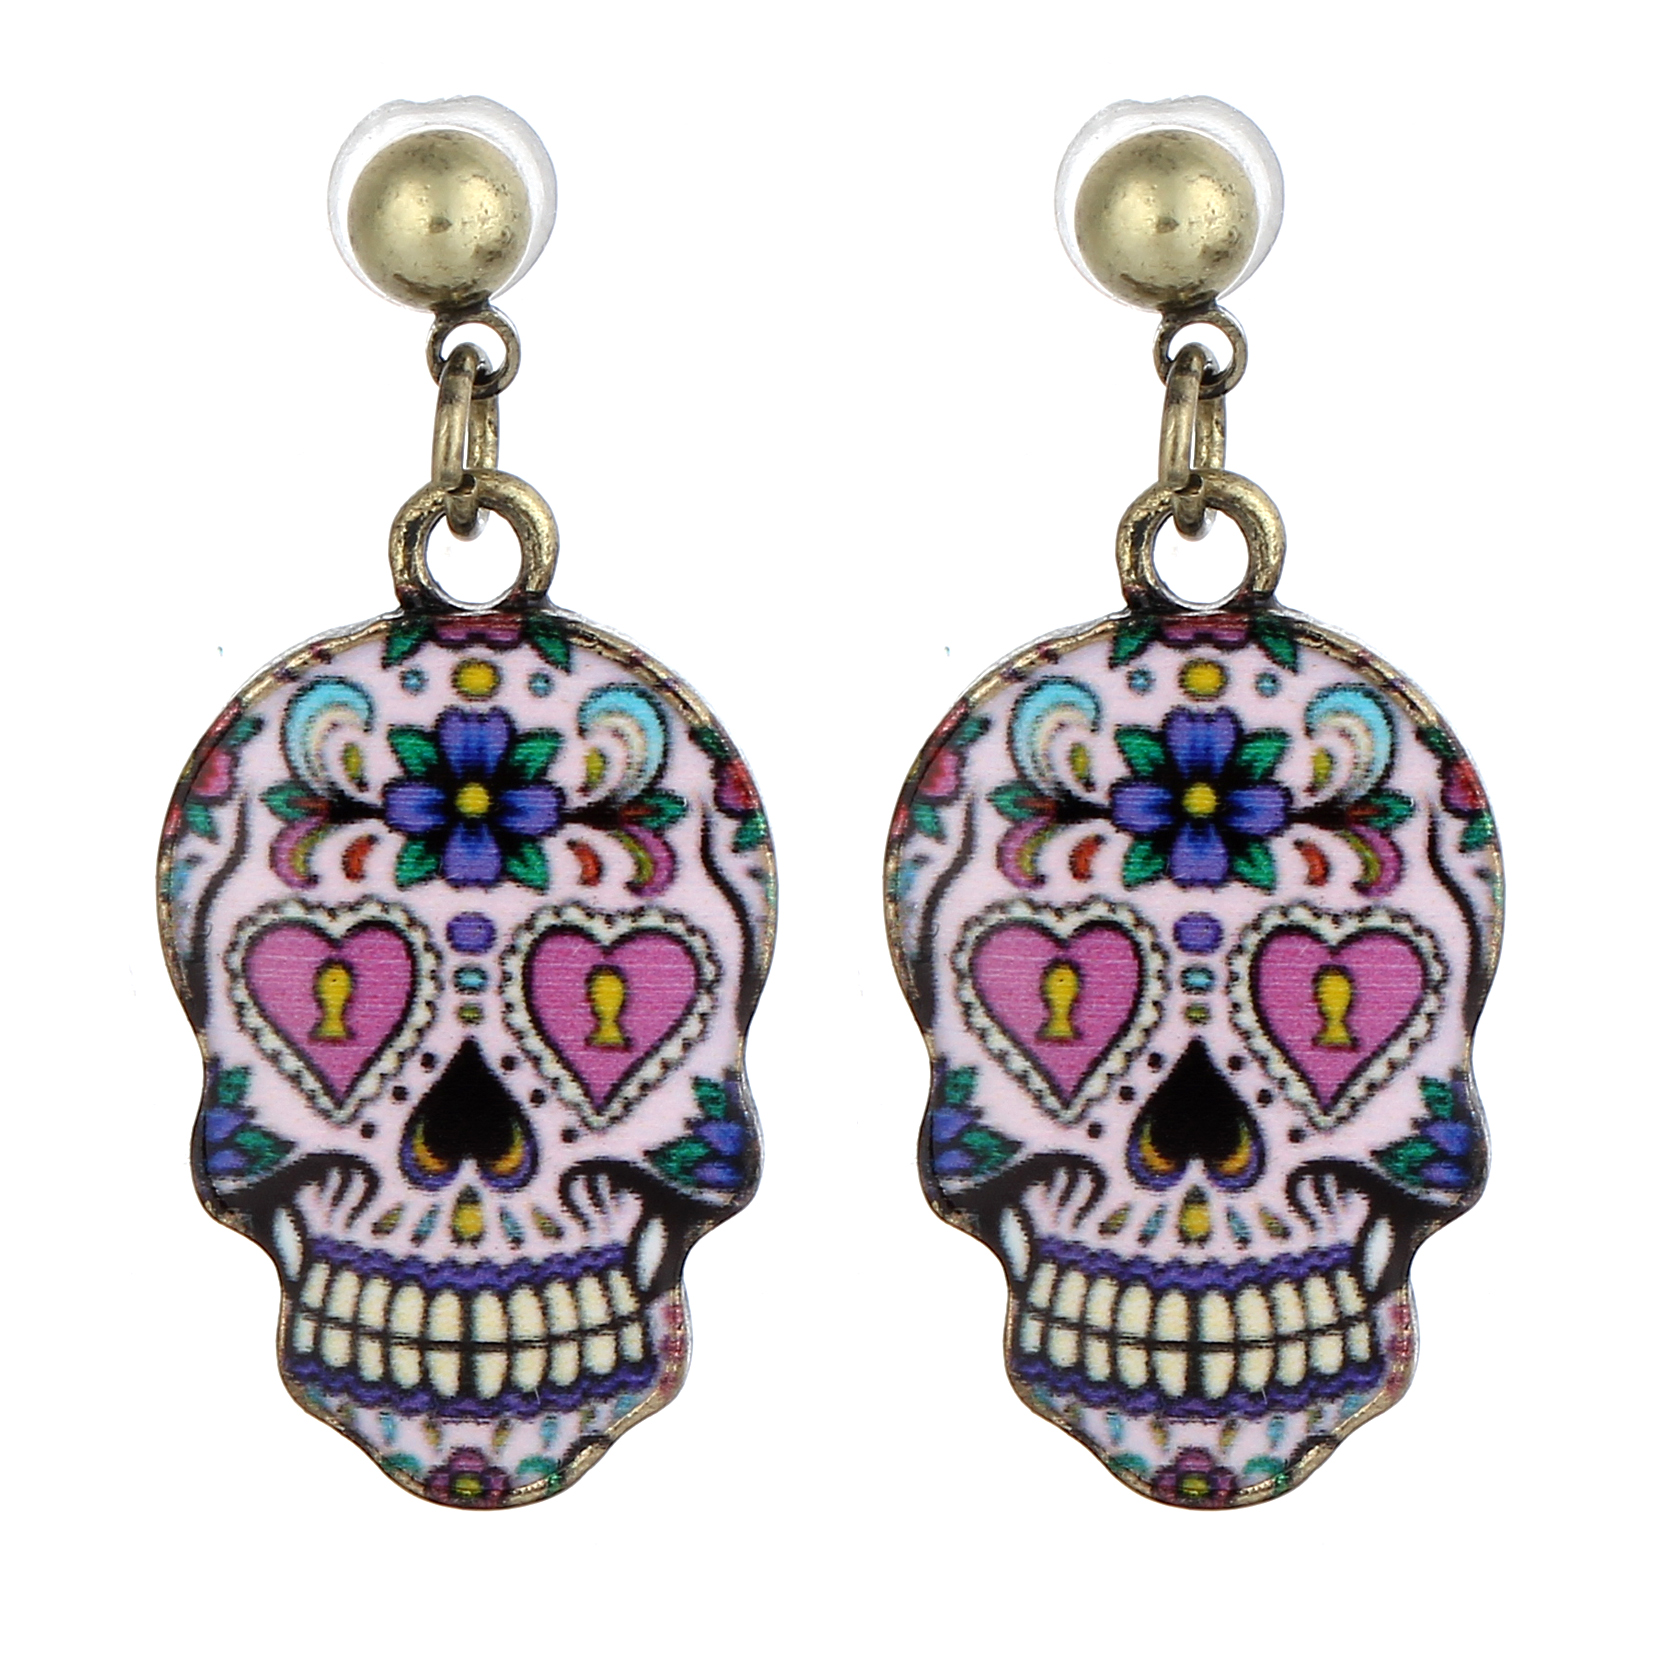 Vintage Skull Stud Earrings Fashion Golden Plated Beads Flower Long Earing Fashion Jewelry Summer Style Accessories 2016(China (Mainland))